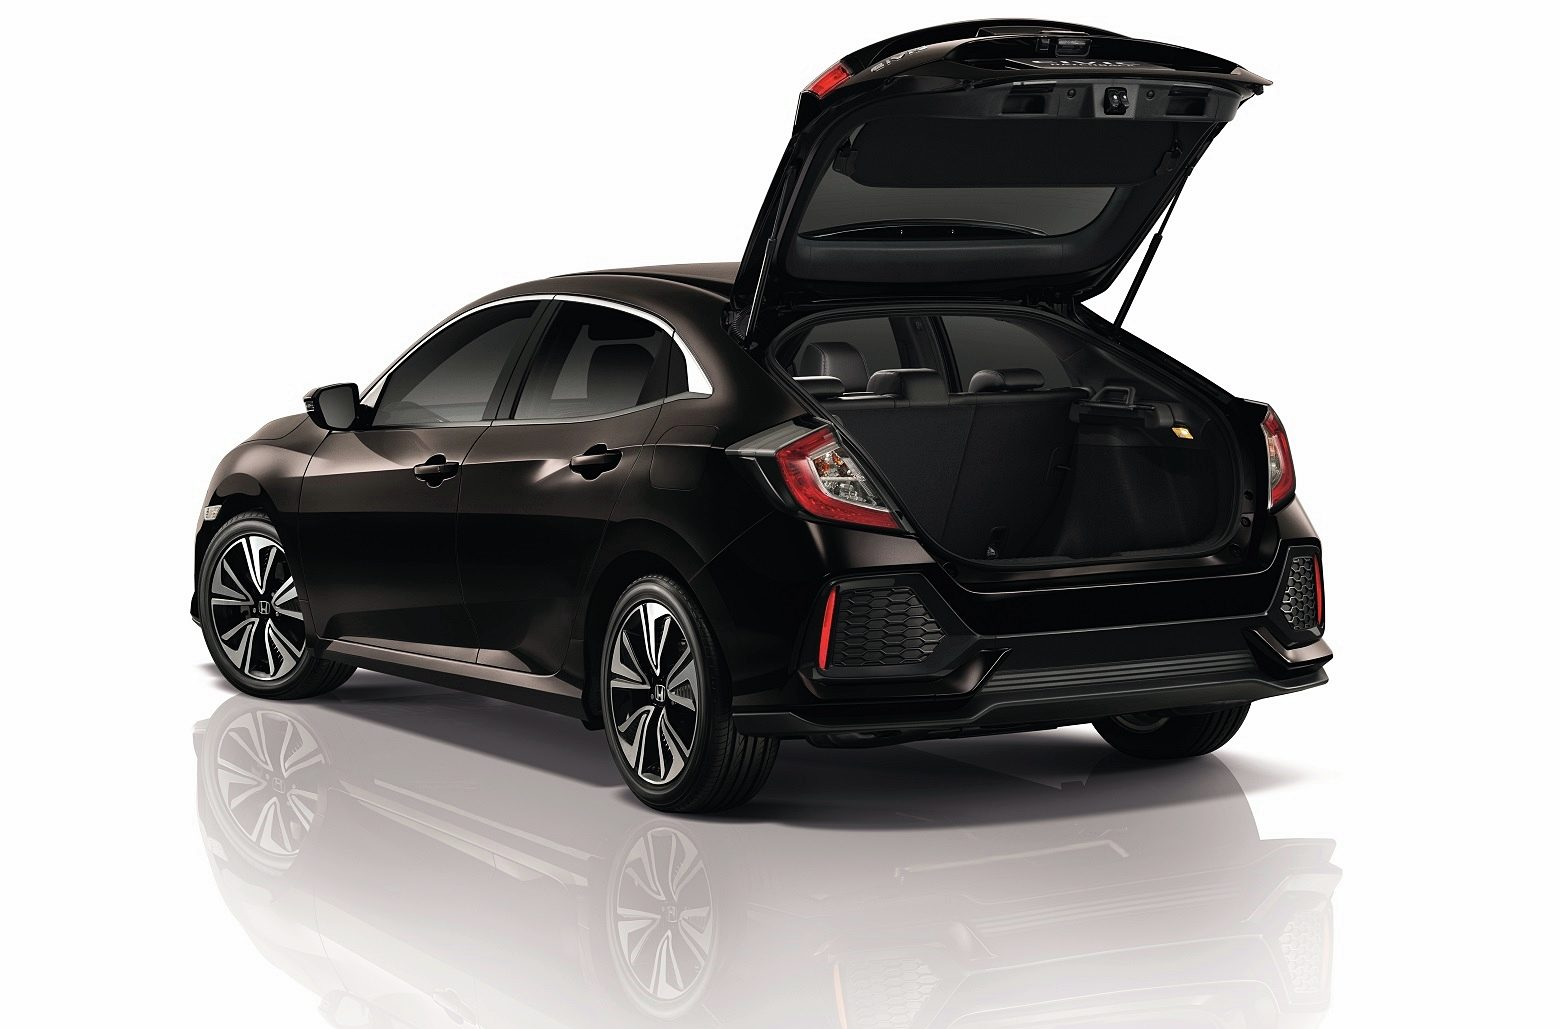 Honda Civic Hatchback Thailand